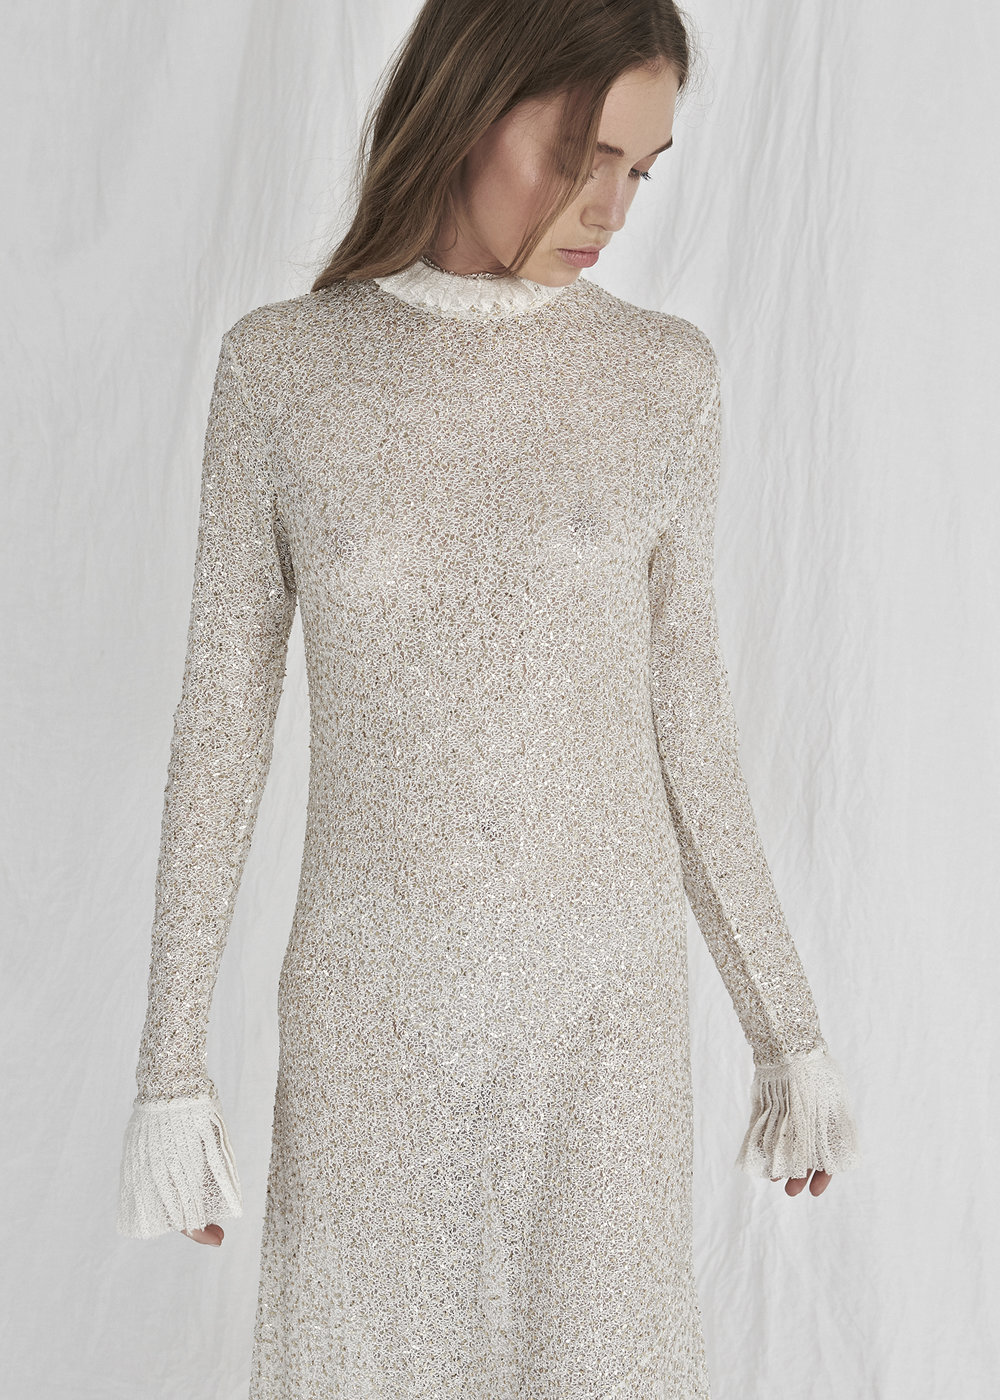 aje-ivory-speckle-embellished-high-neck-mirbella-dress-crop.jpg